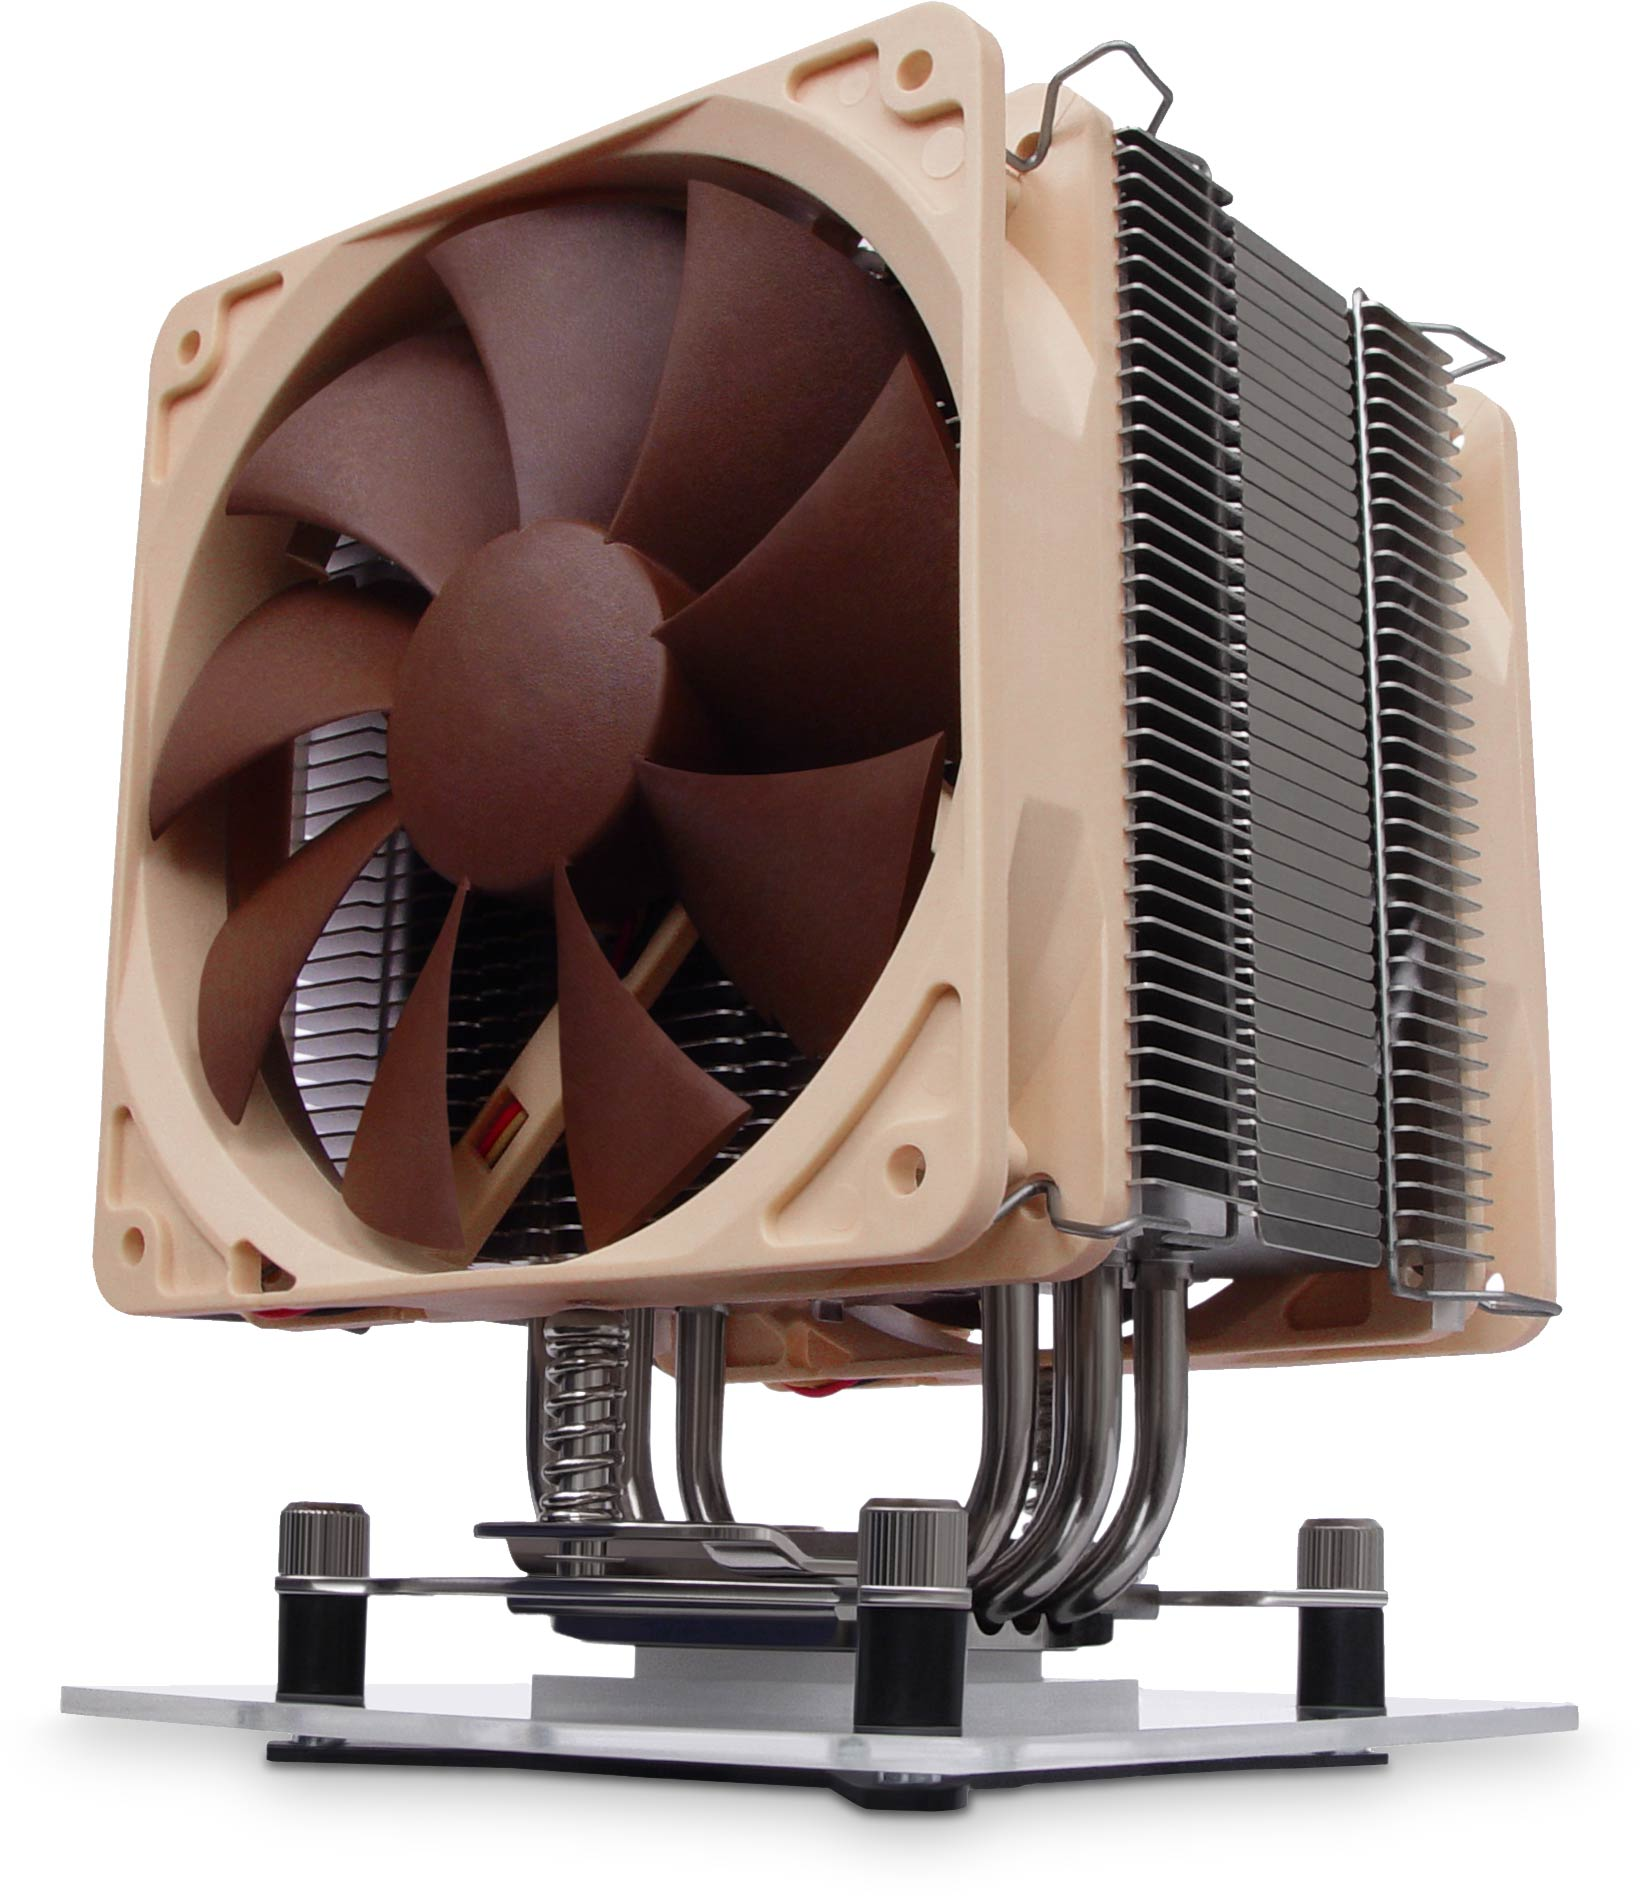 Processor Cooling Fan : Nh u p se dual fan cpu cooler